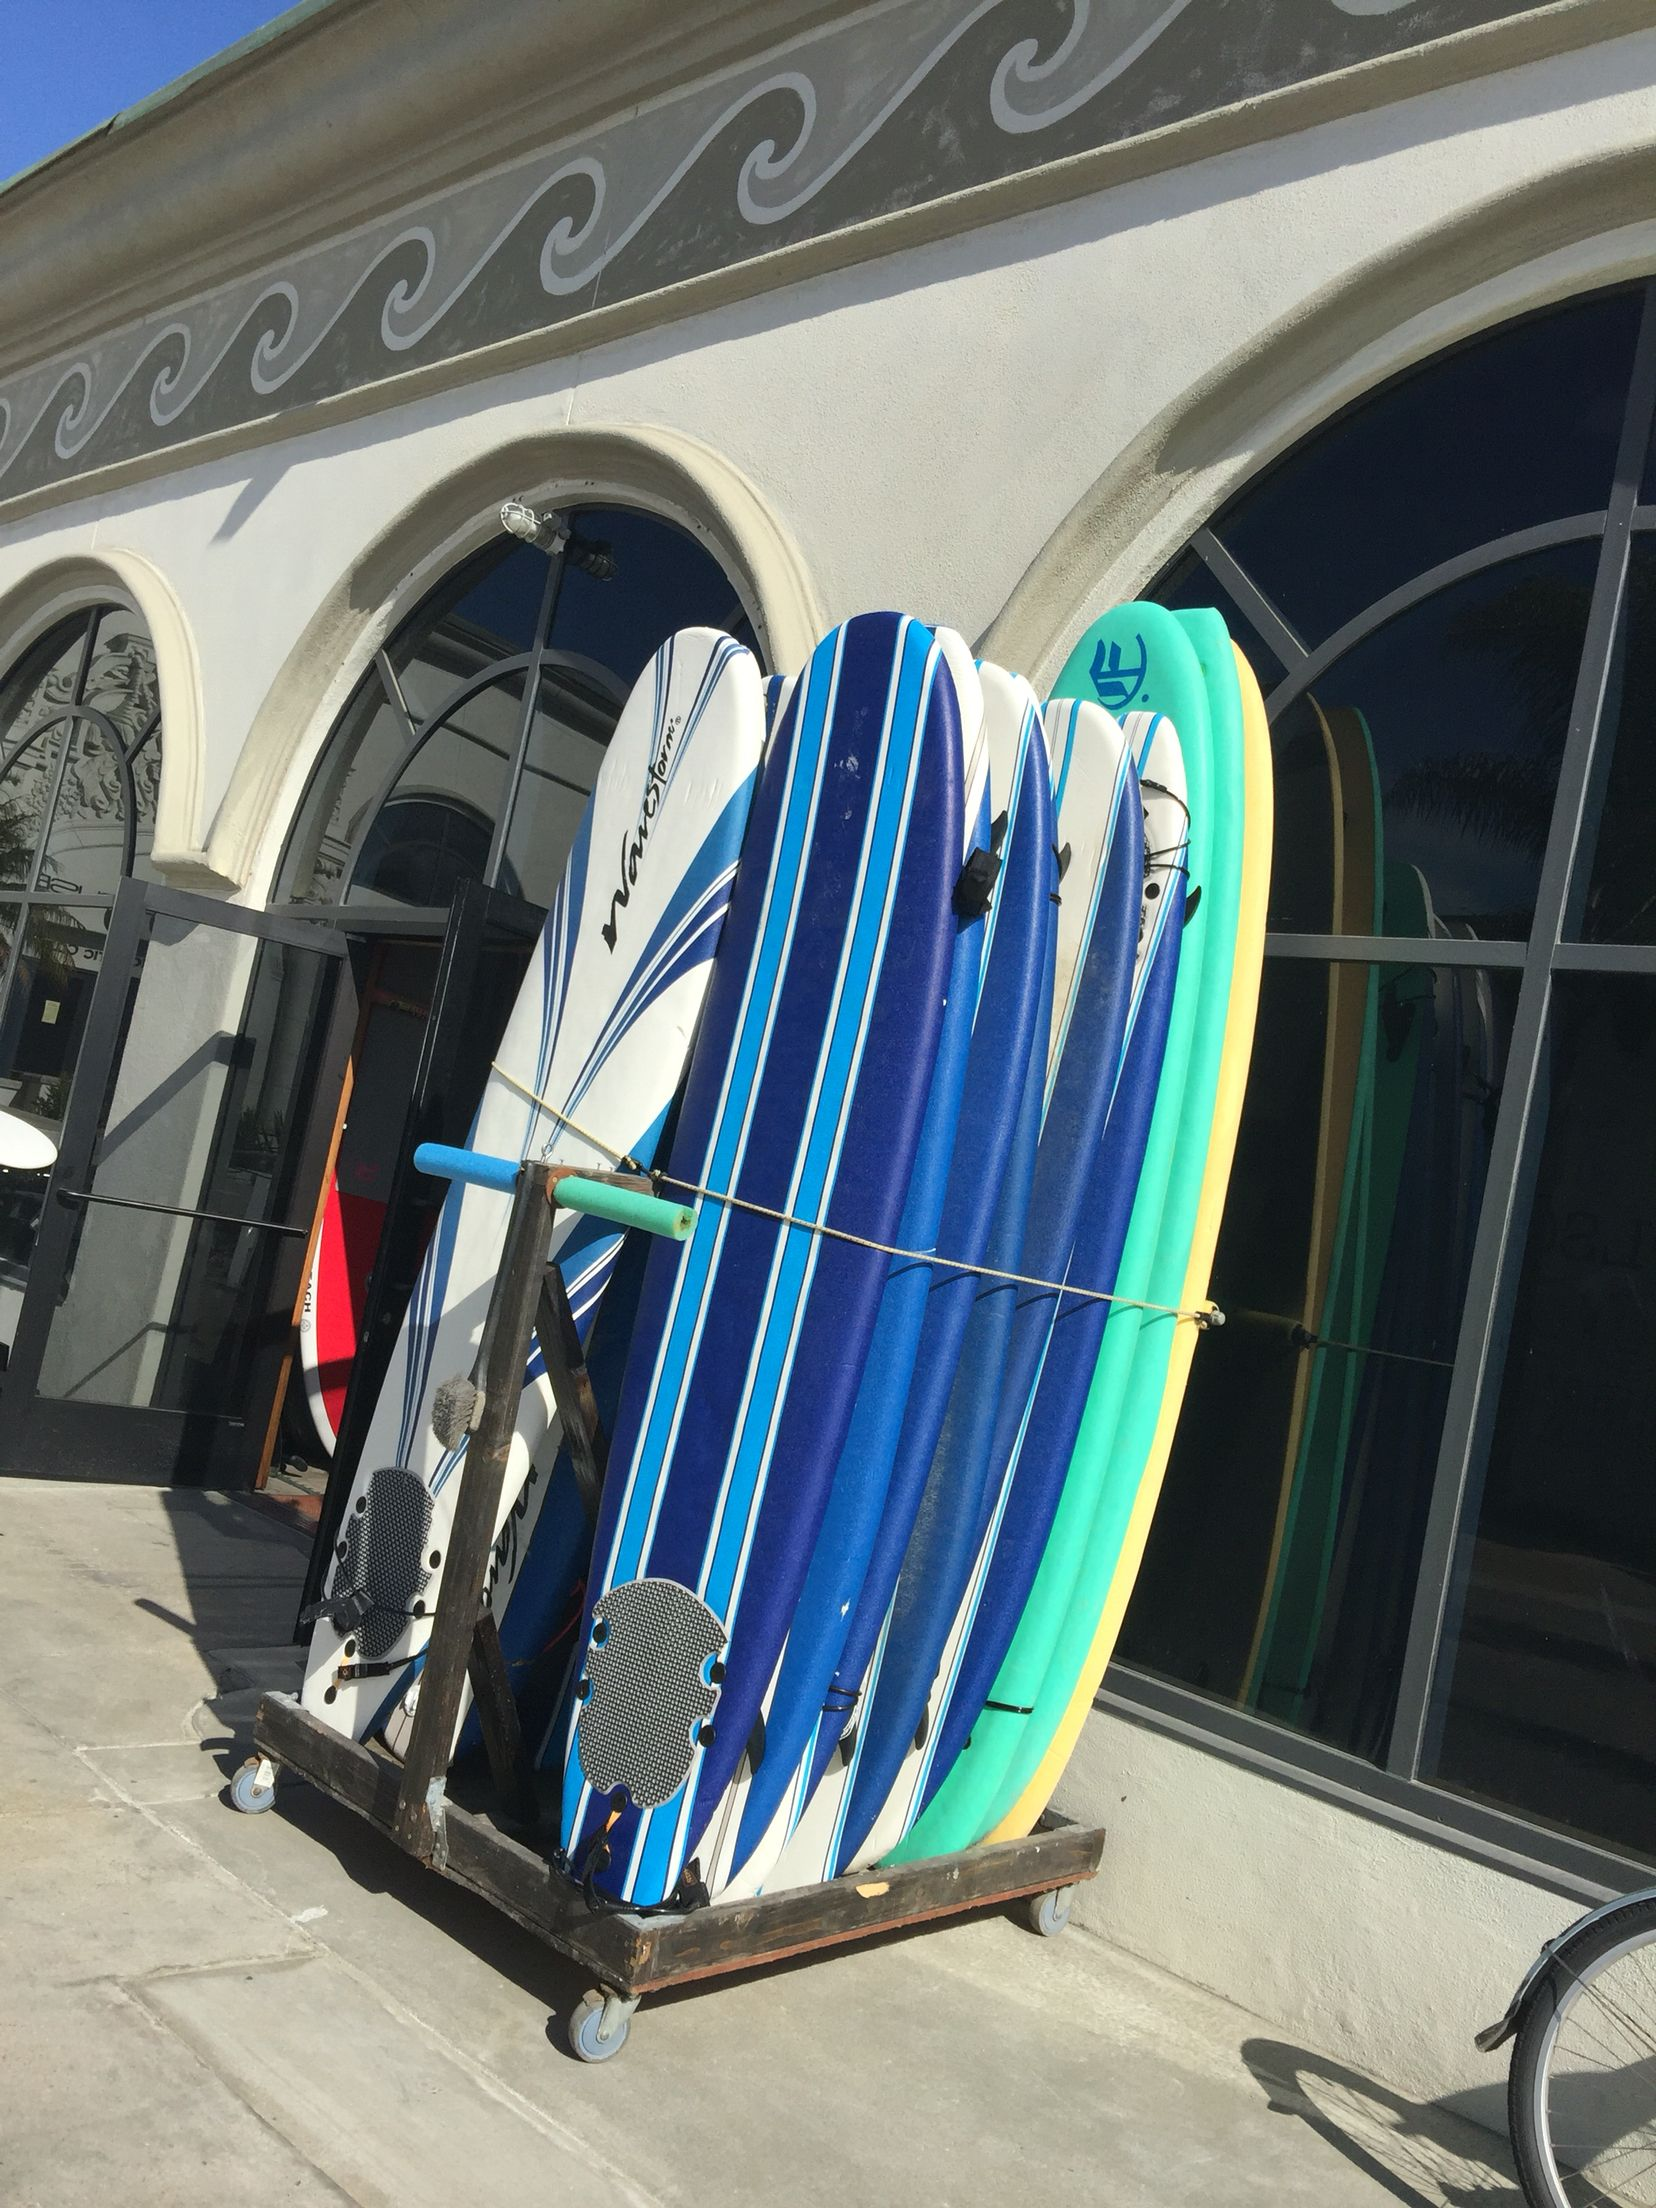 Surf shop at Belmont Park, Mission Beach Park, San Diego